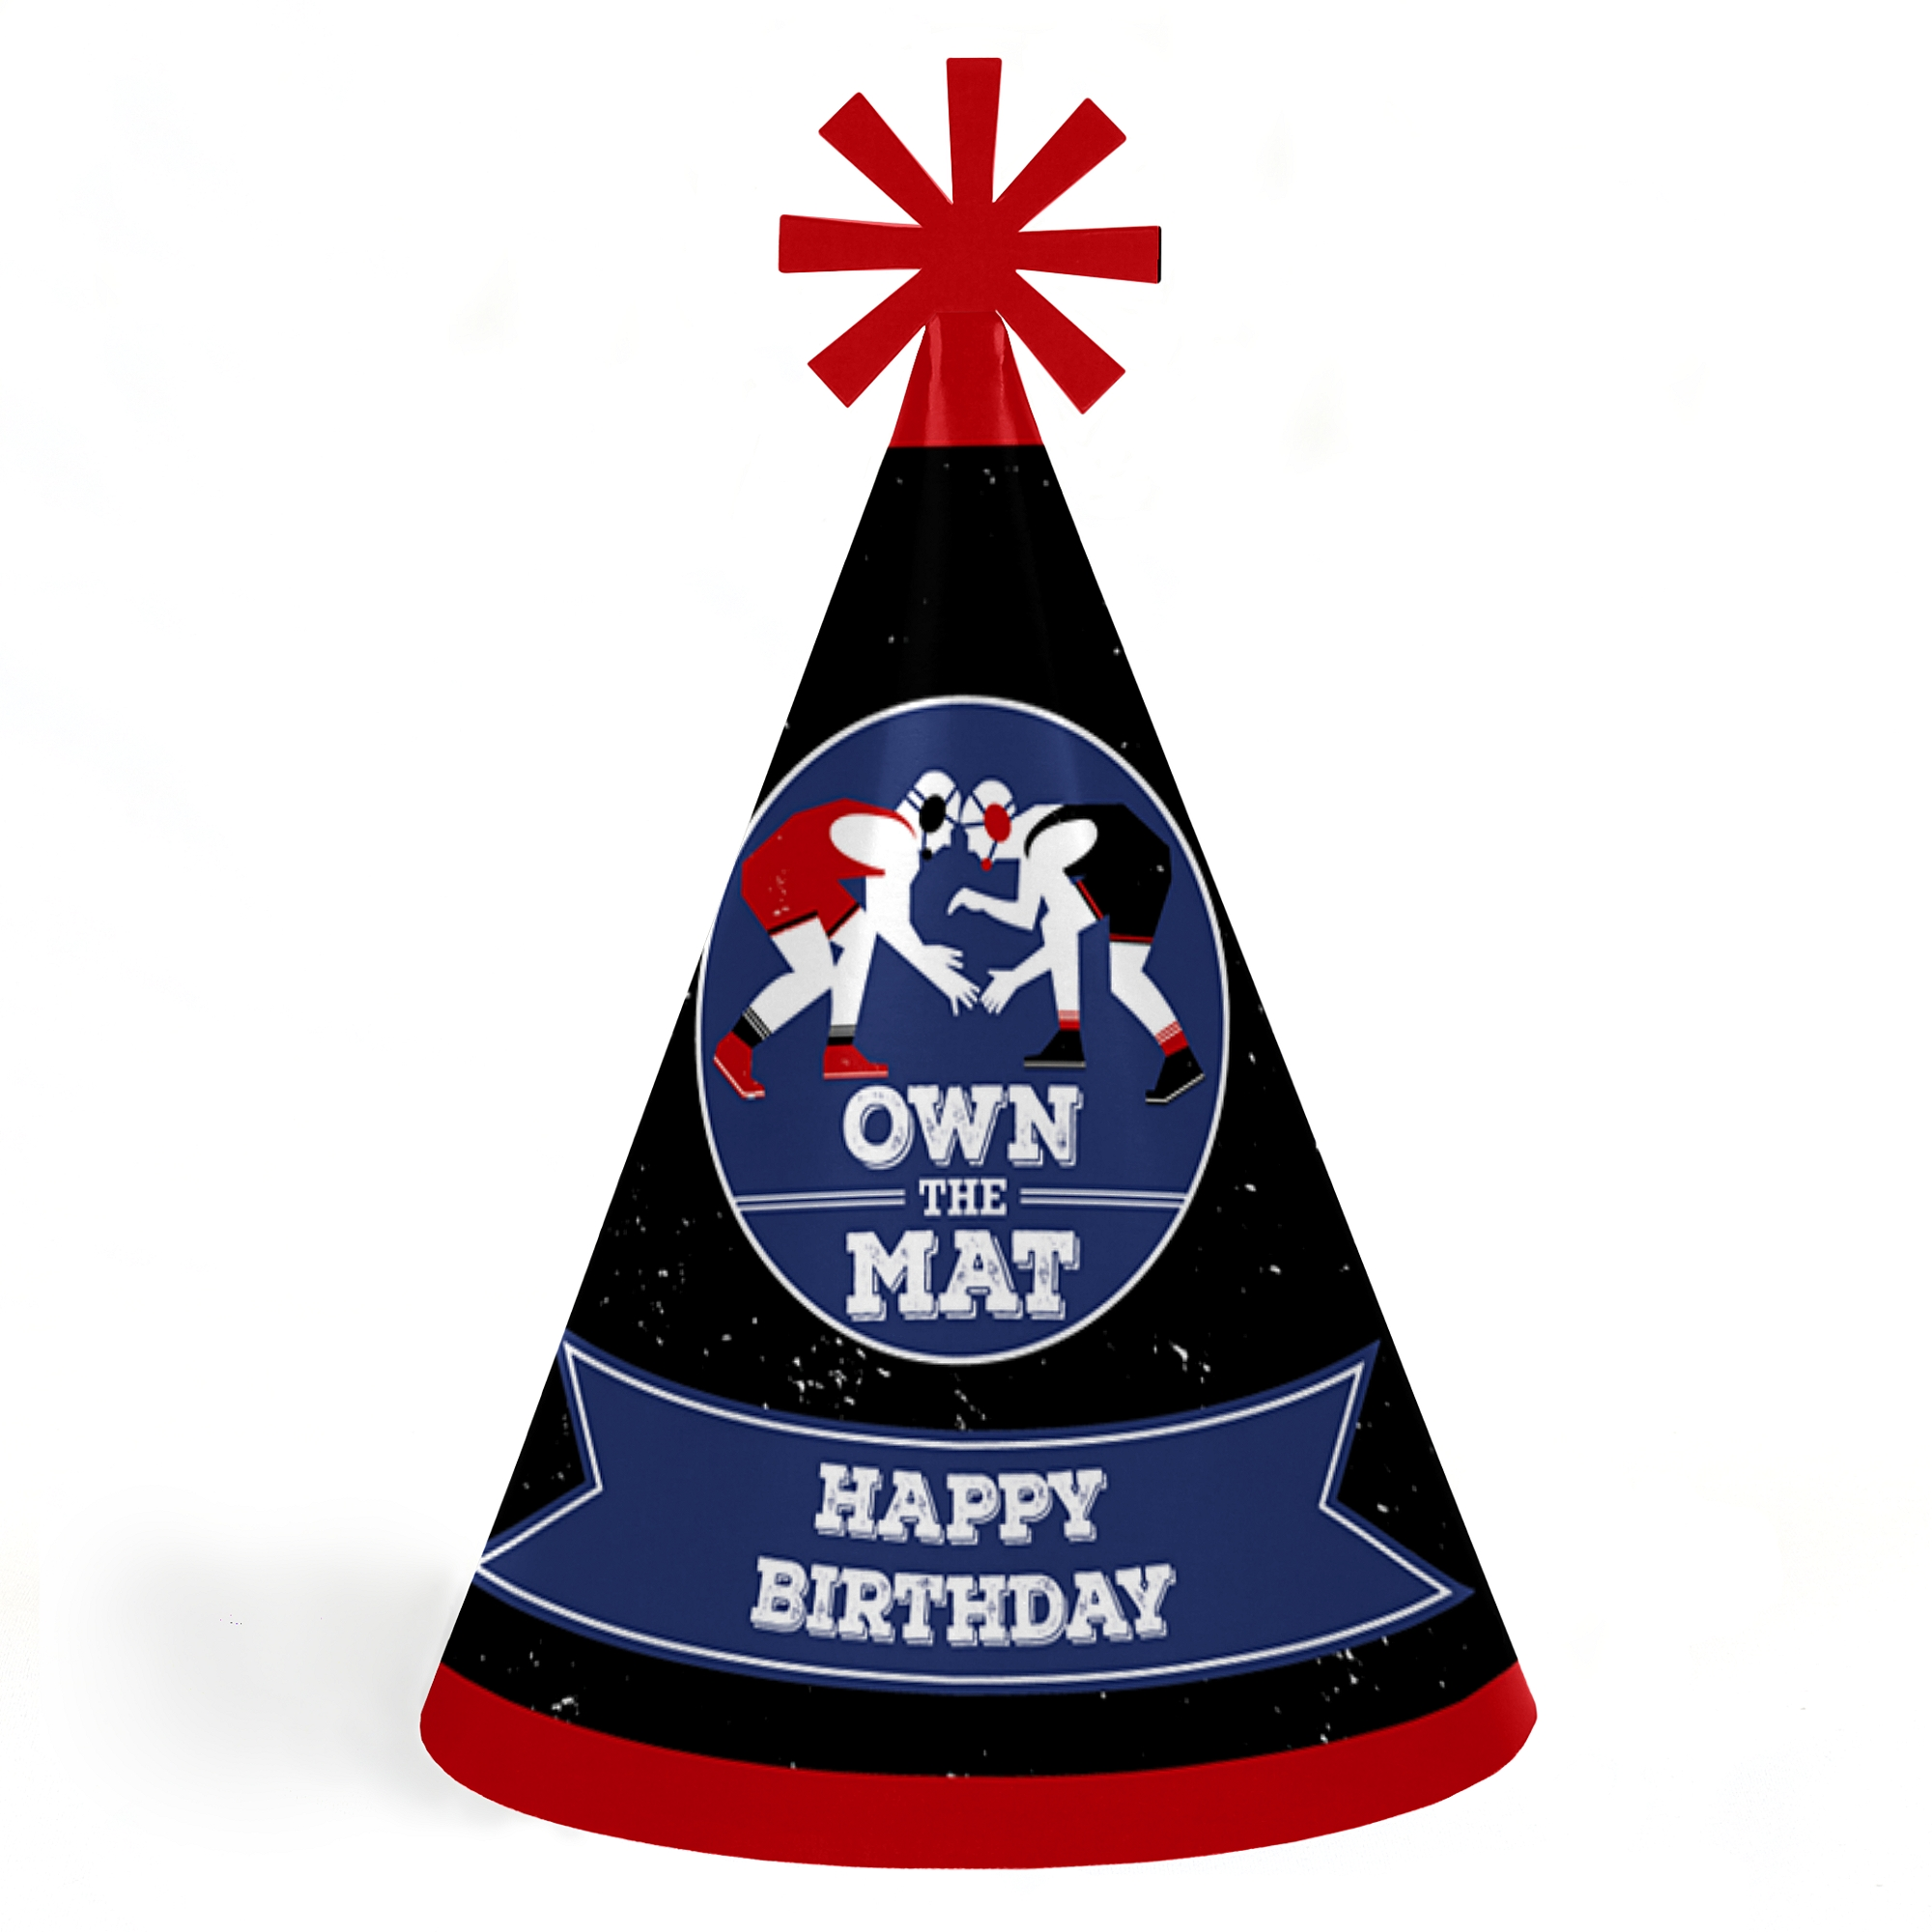 Own The Mat - Wrestling -Cone Happy Birthday Party Hats for Kids and ...